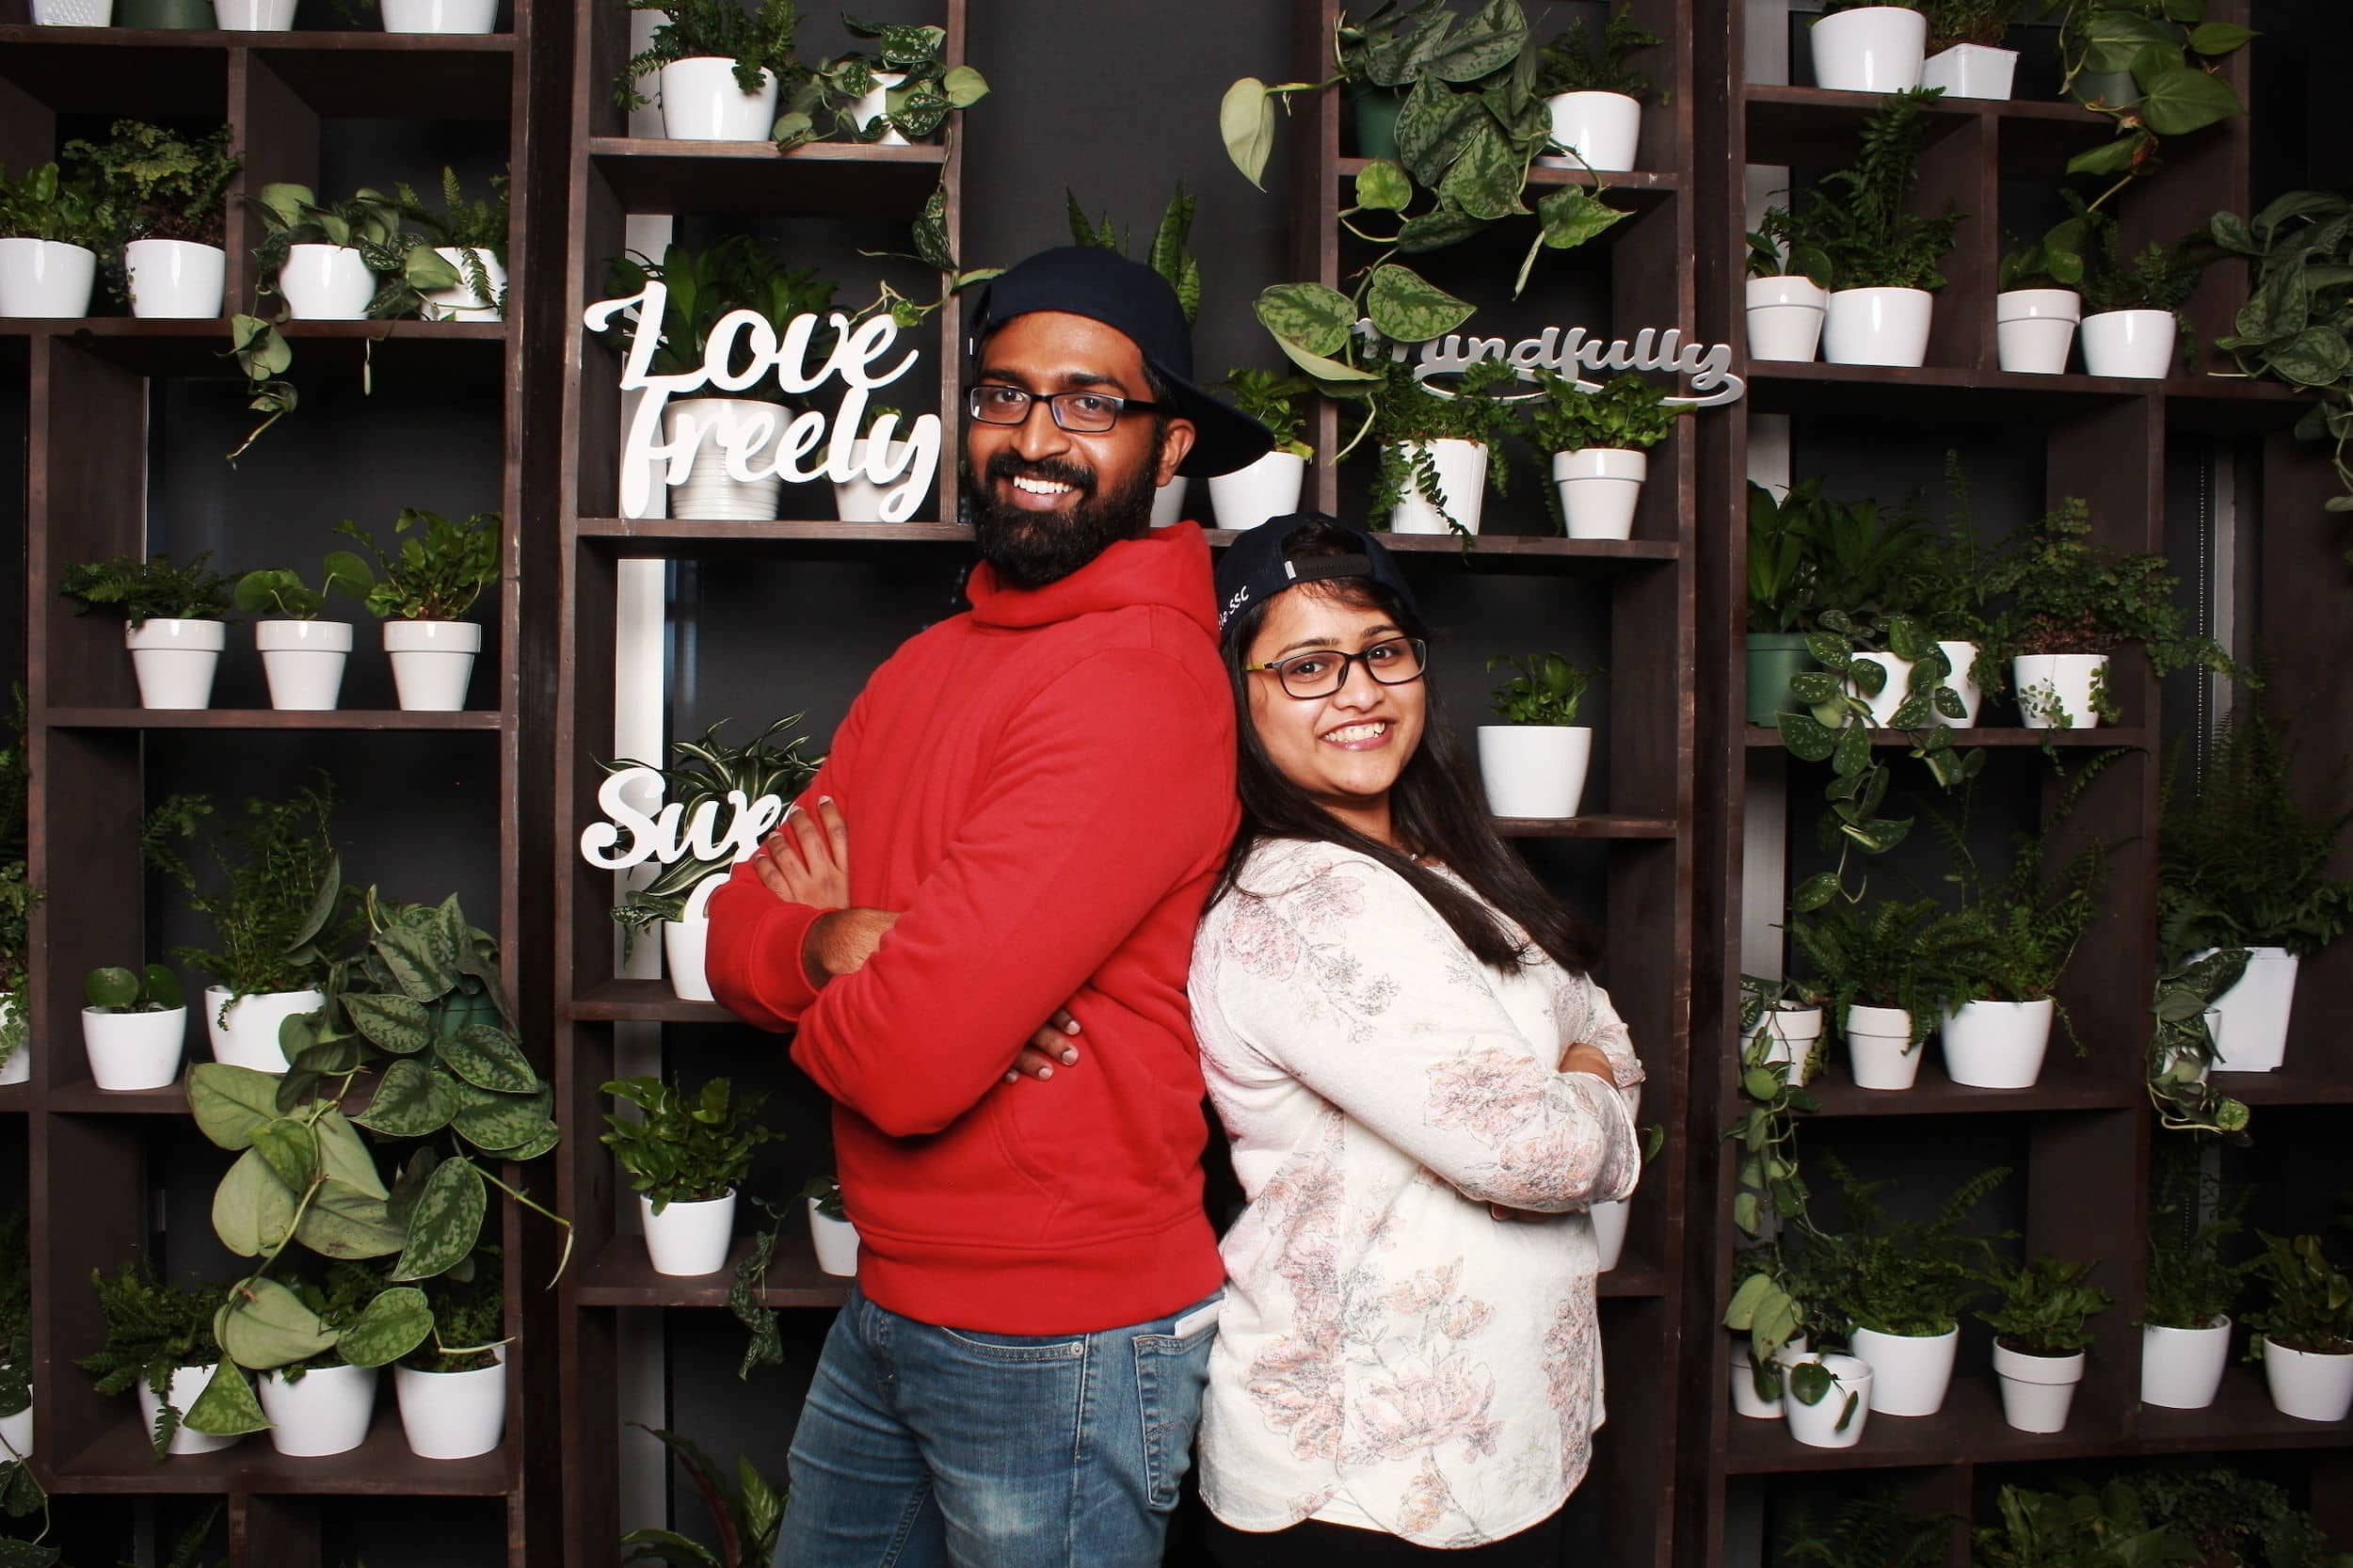 Lululemon Seattle photo booth floral backdrop